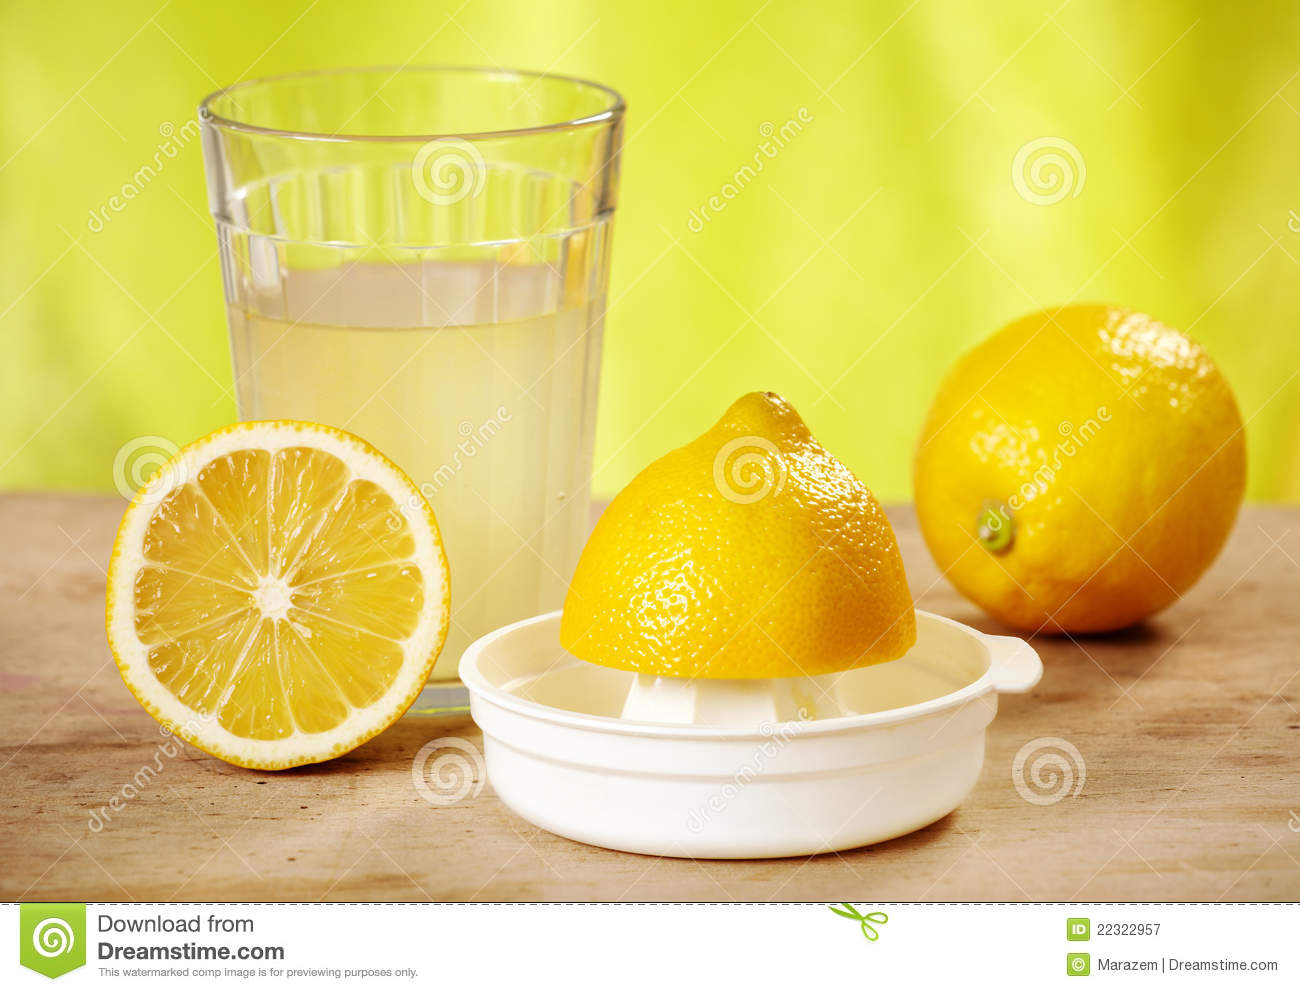 Best Way Juice Lemon 6 Ways To Get Rid Of A Pimple Fast And Easy Planet Laika